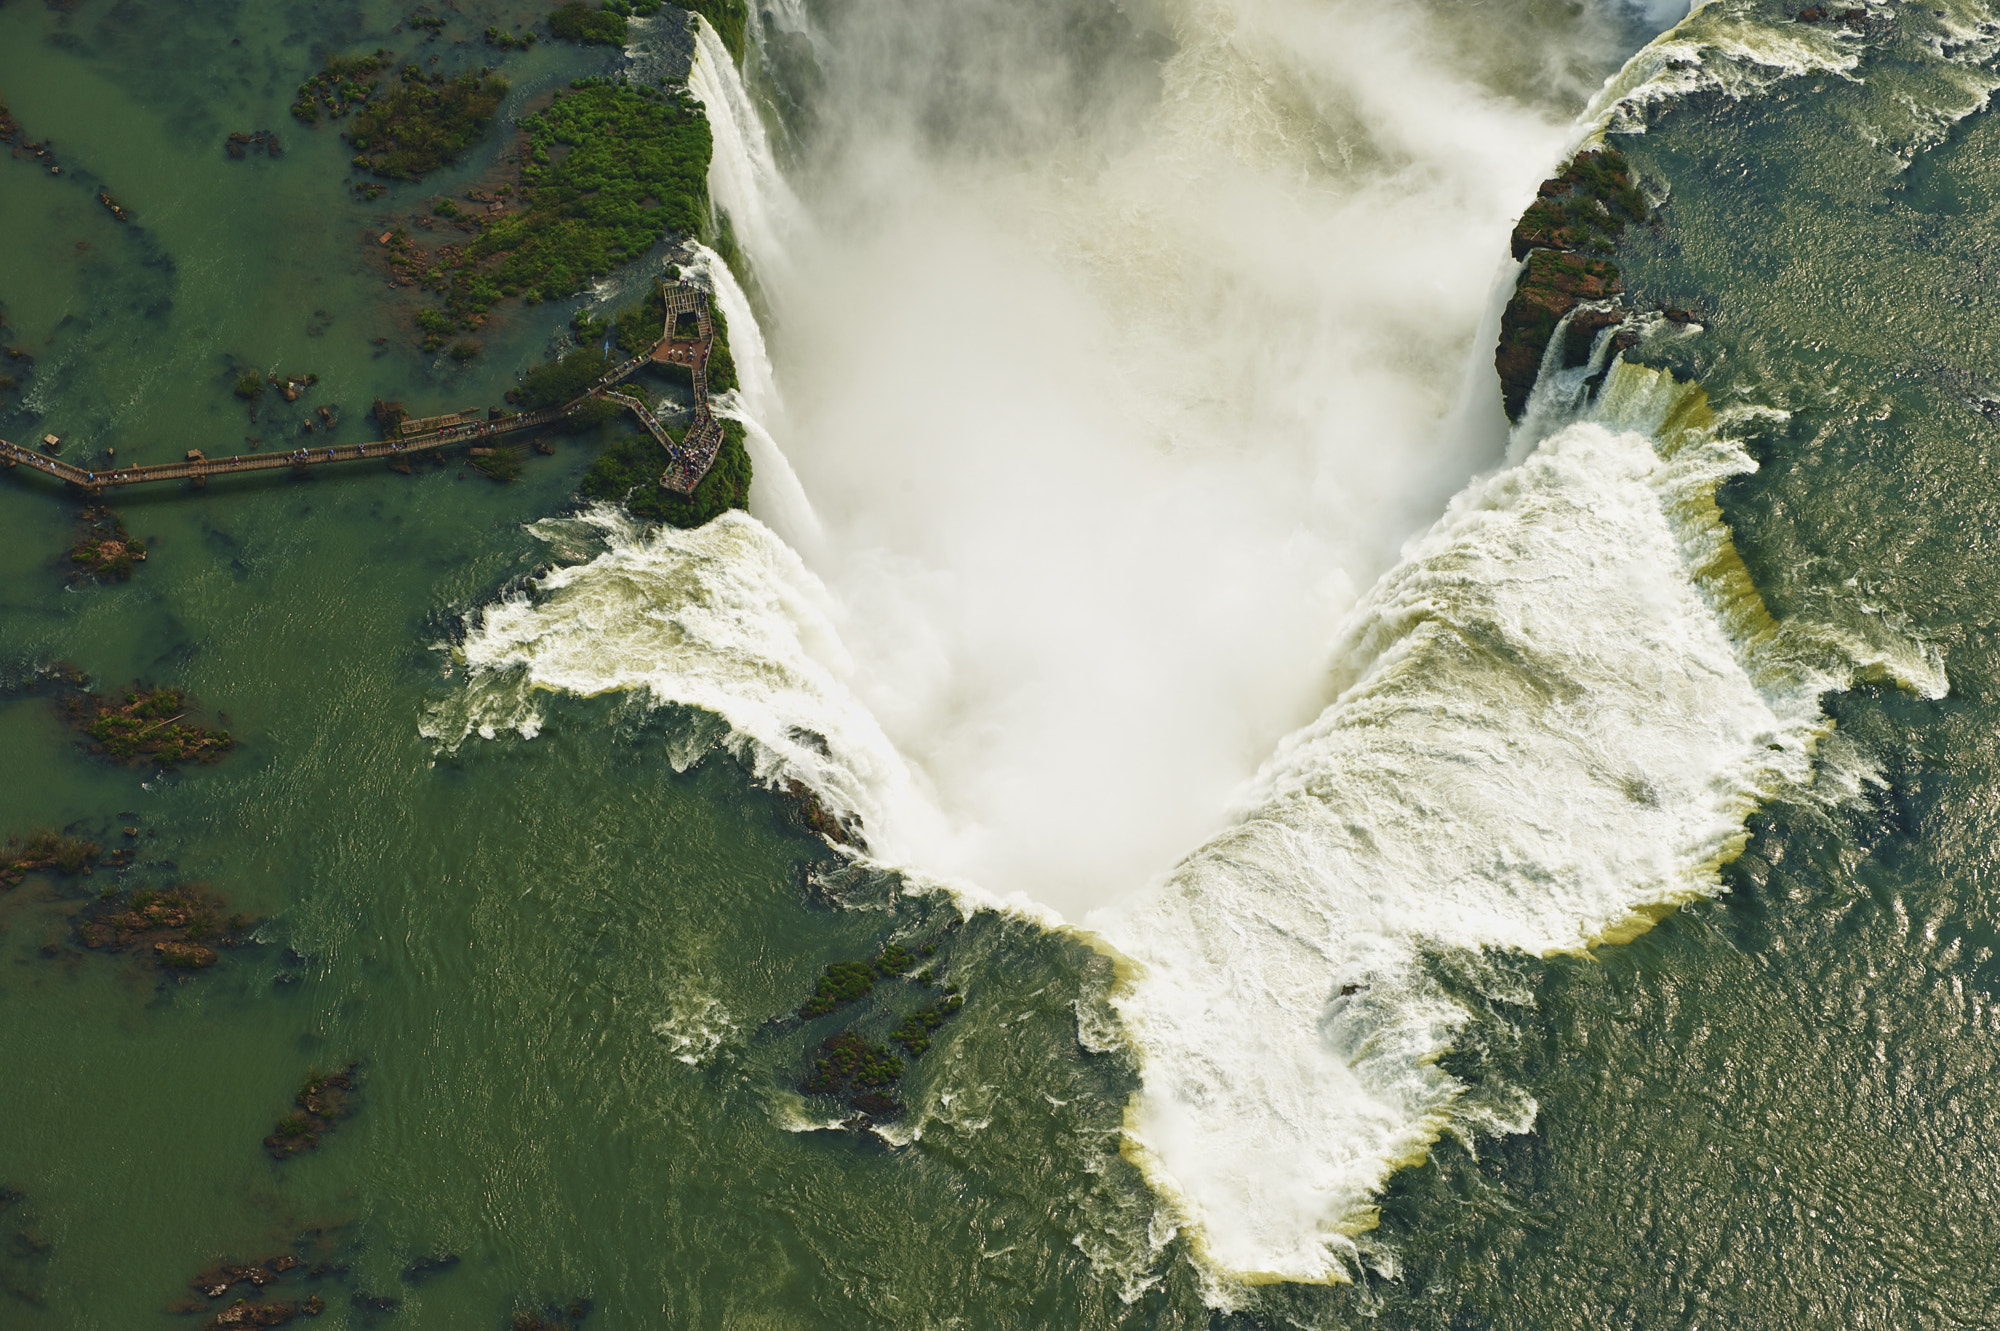 Photograph Aerial view of the Iguazu falls  by Chris Schmid on 500px